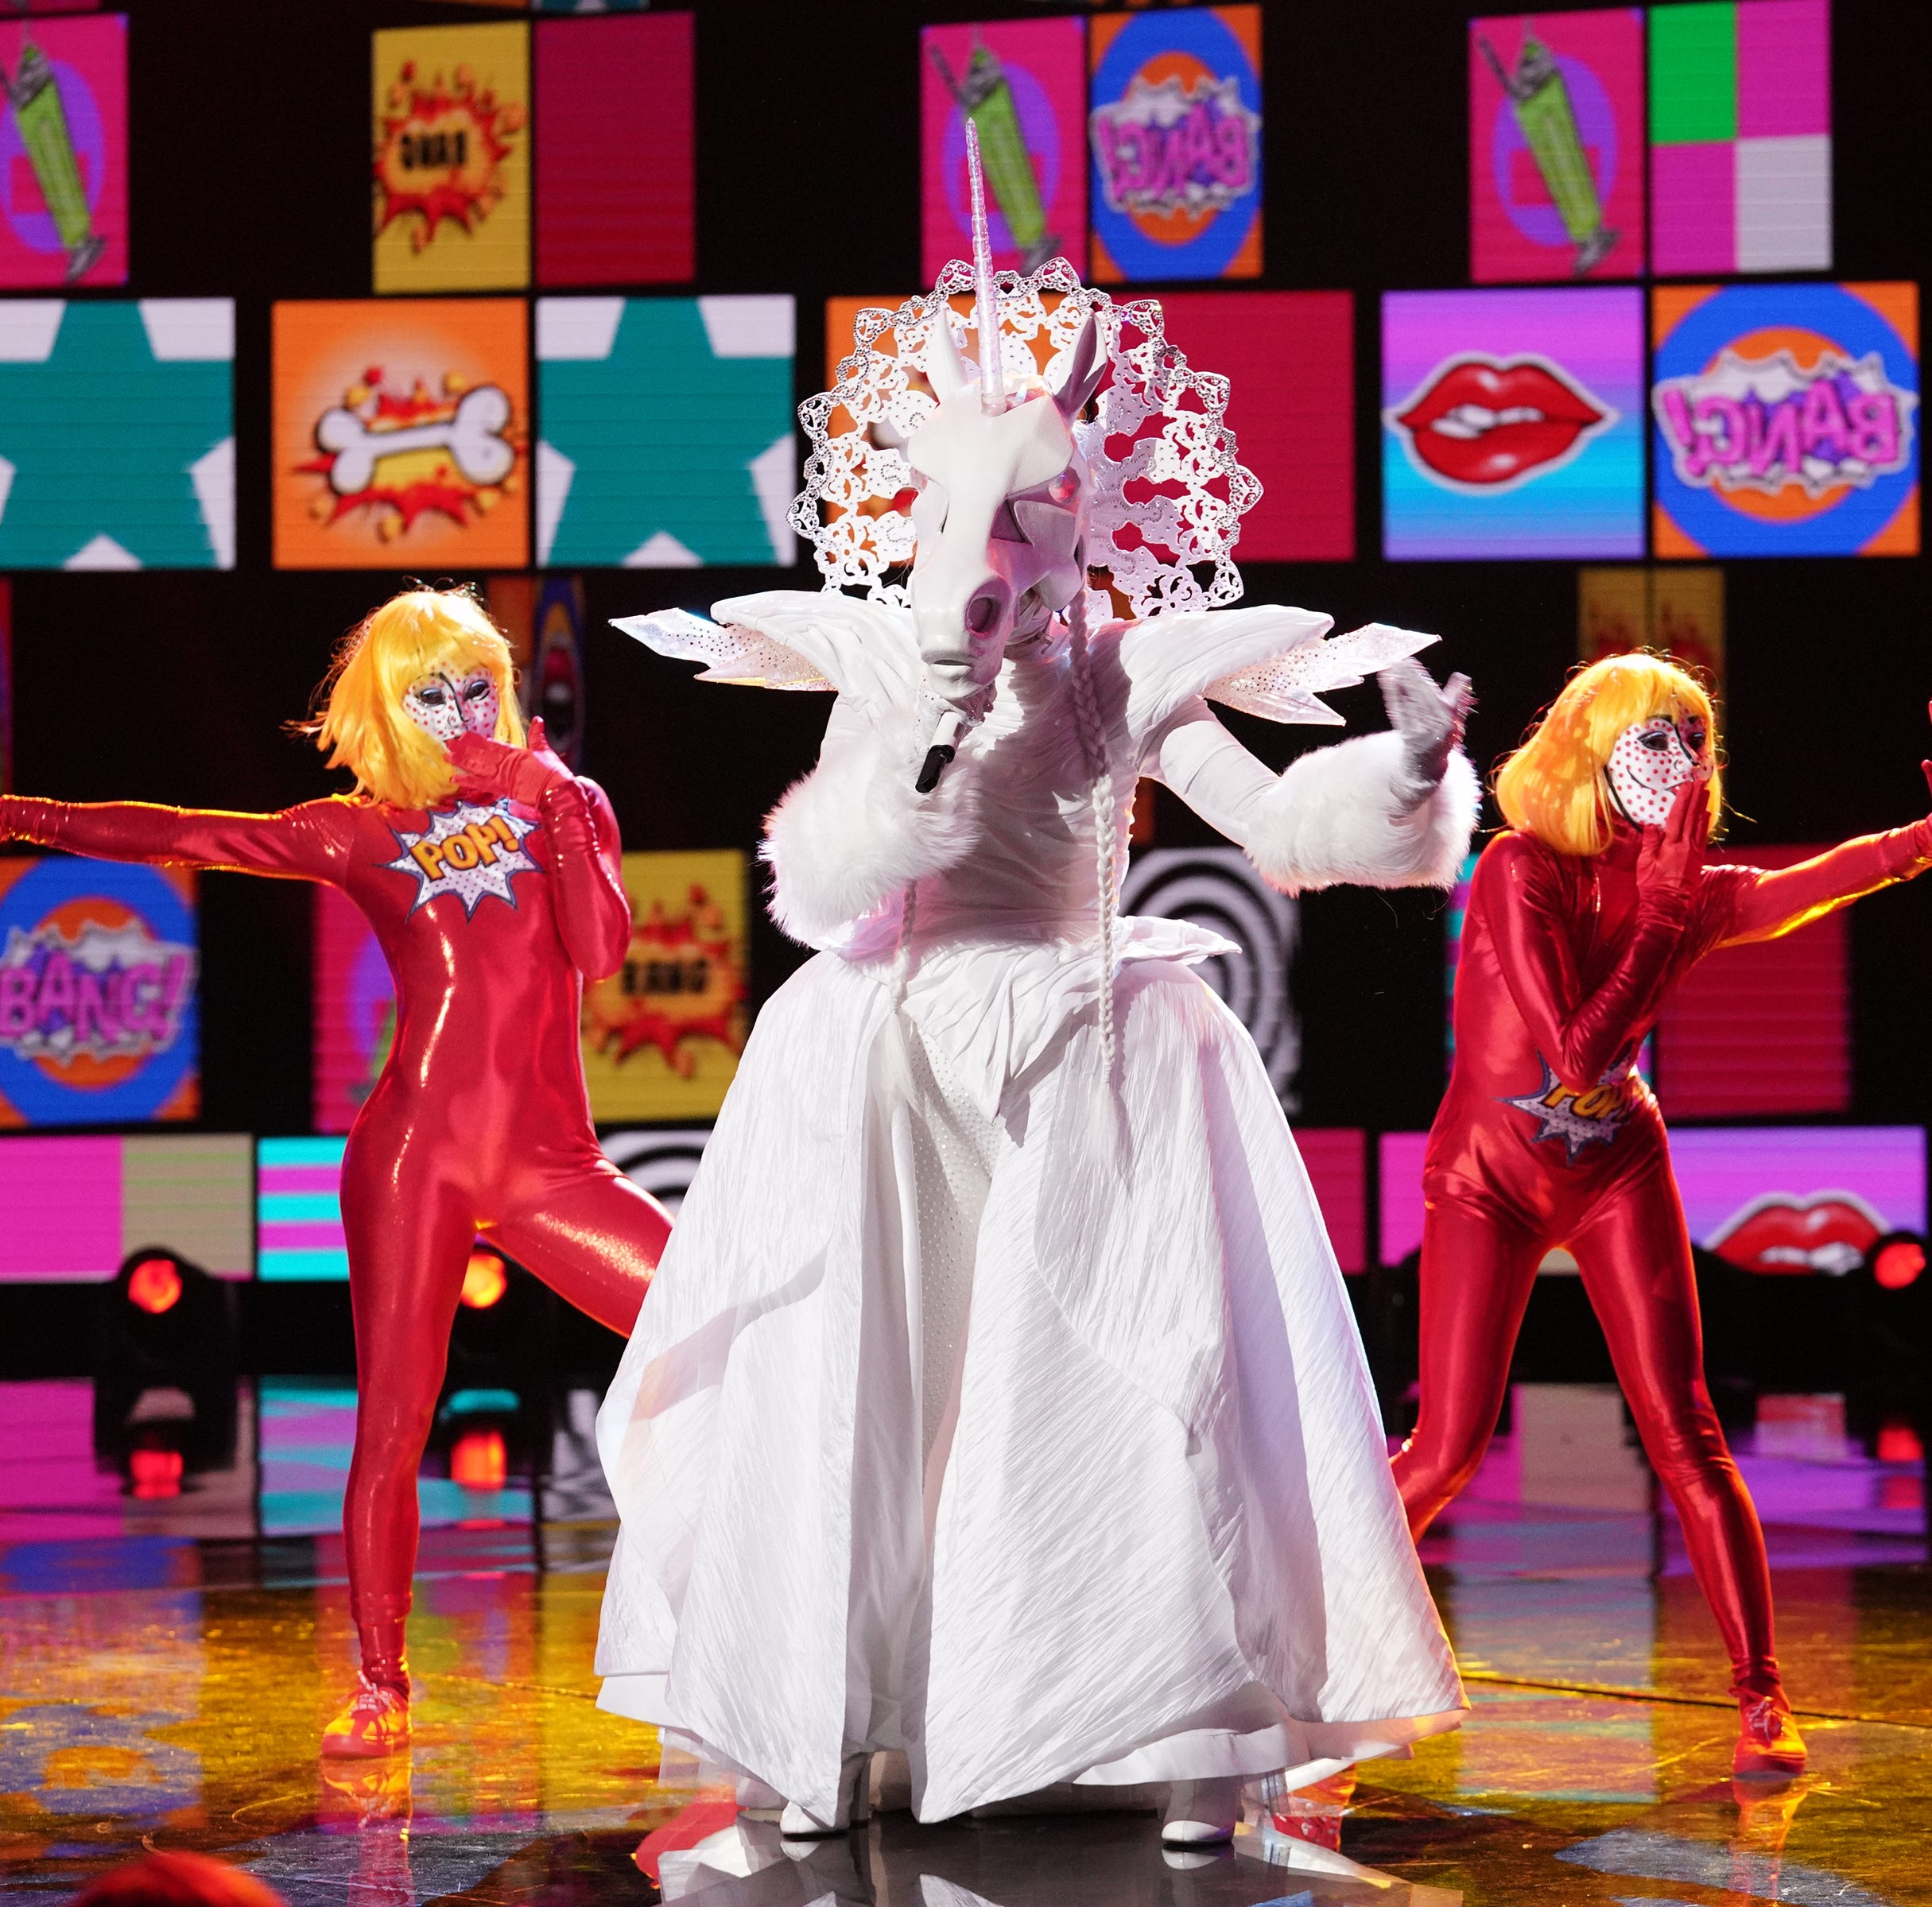 """THE MASKED SINGER: Unicorn in the """"Mix and Masks"""" episode of THE MASKED SINGER airing Wednesday, Jan. 30 (9:00-10:00 PM ET/PT) on FOX. © 2019 FOX Broadcasting. CR: Michael Becker / FOX."""